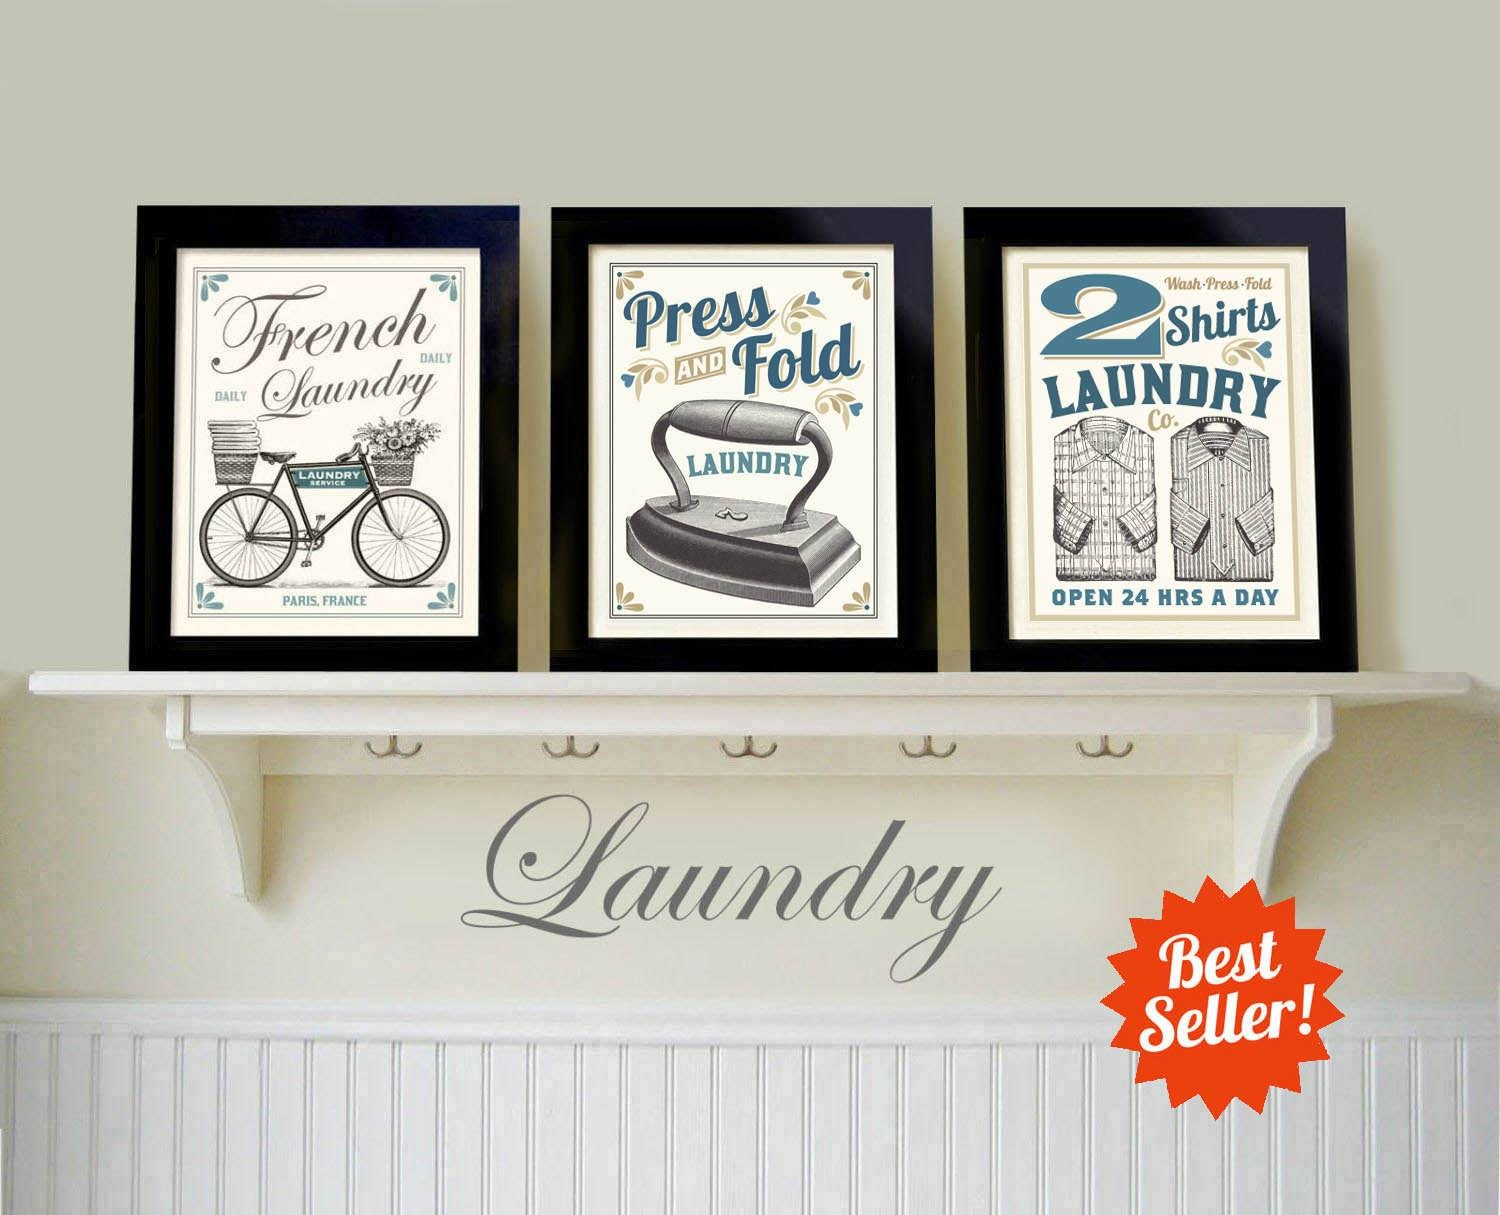 Laundry Room Art Decor French Country Art Vintage Style Intended For Most Popular Laundry Room Wall Art (View 4 of 30)